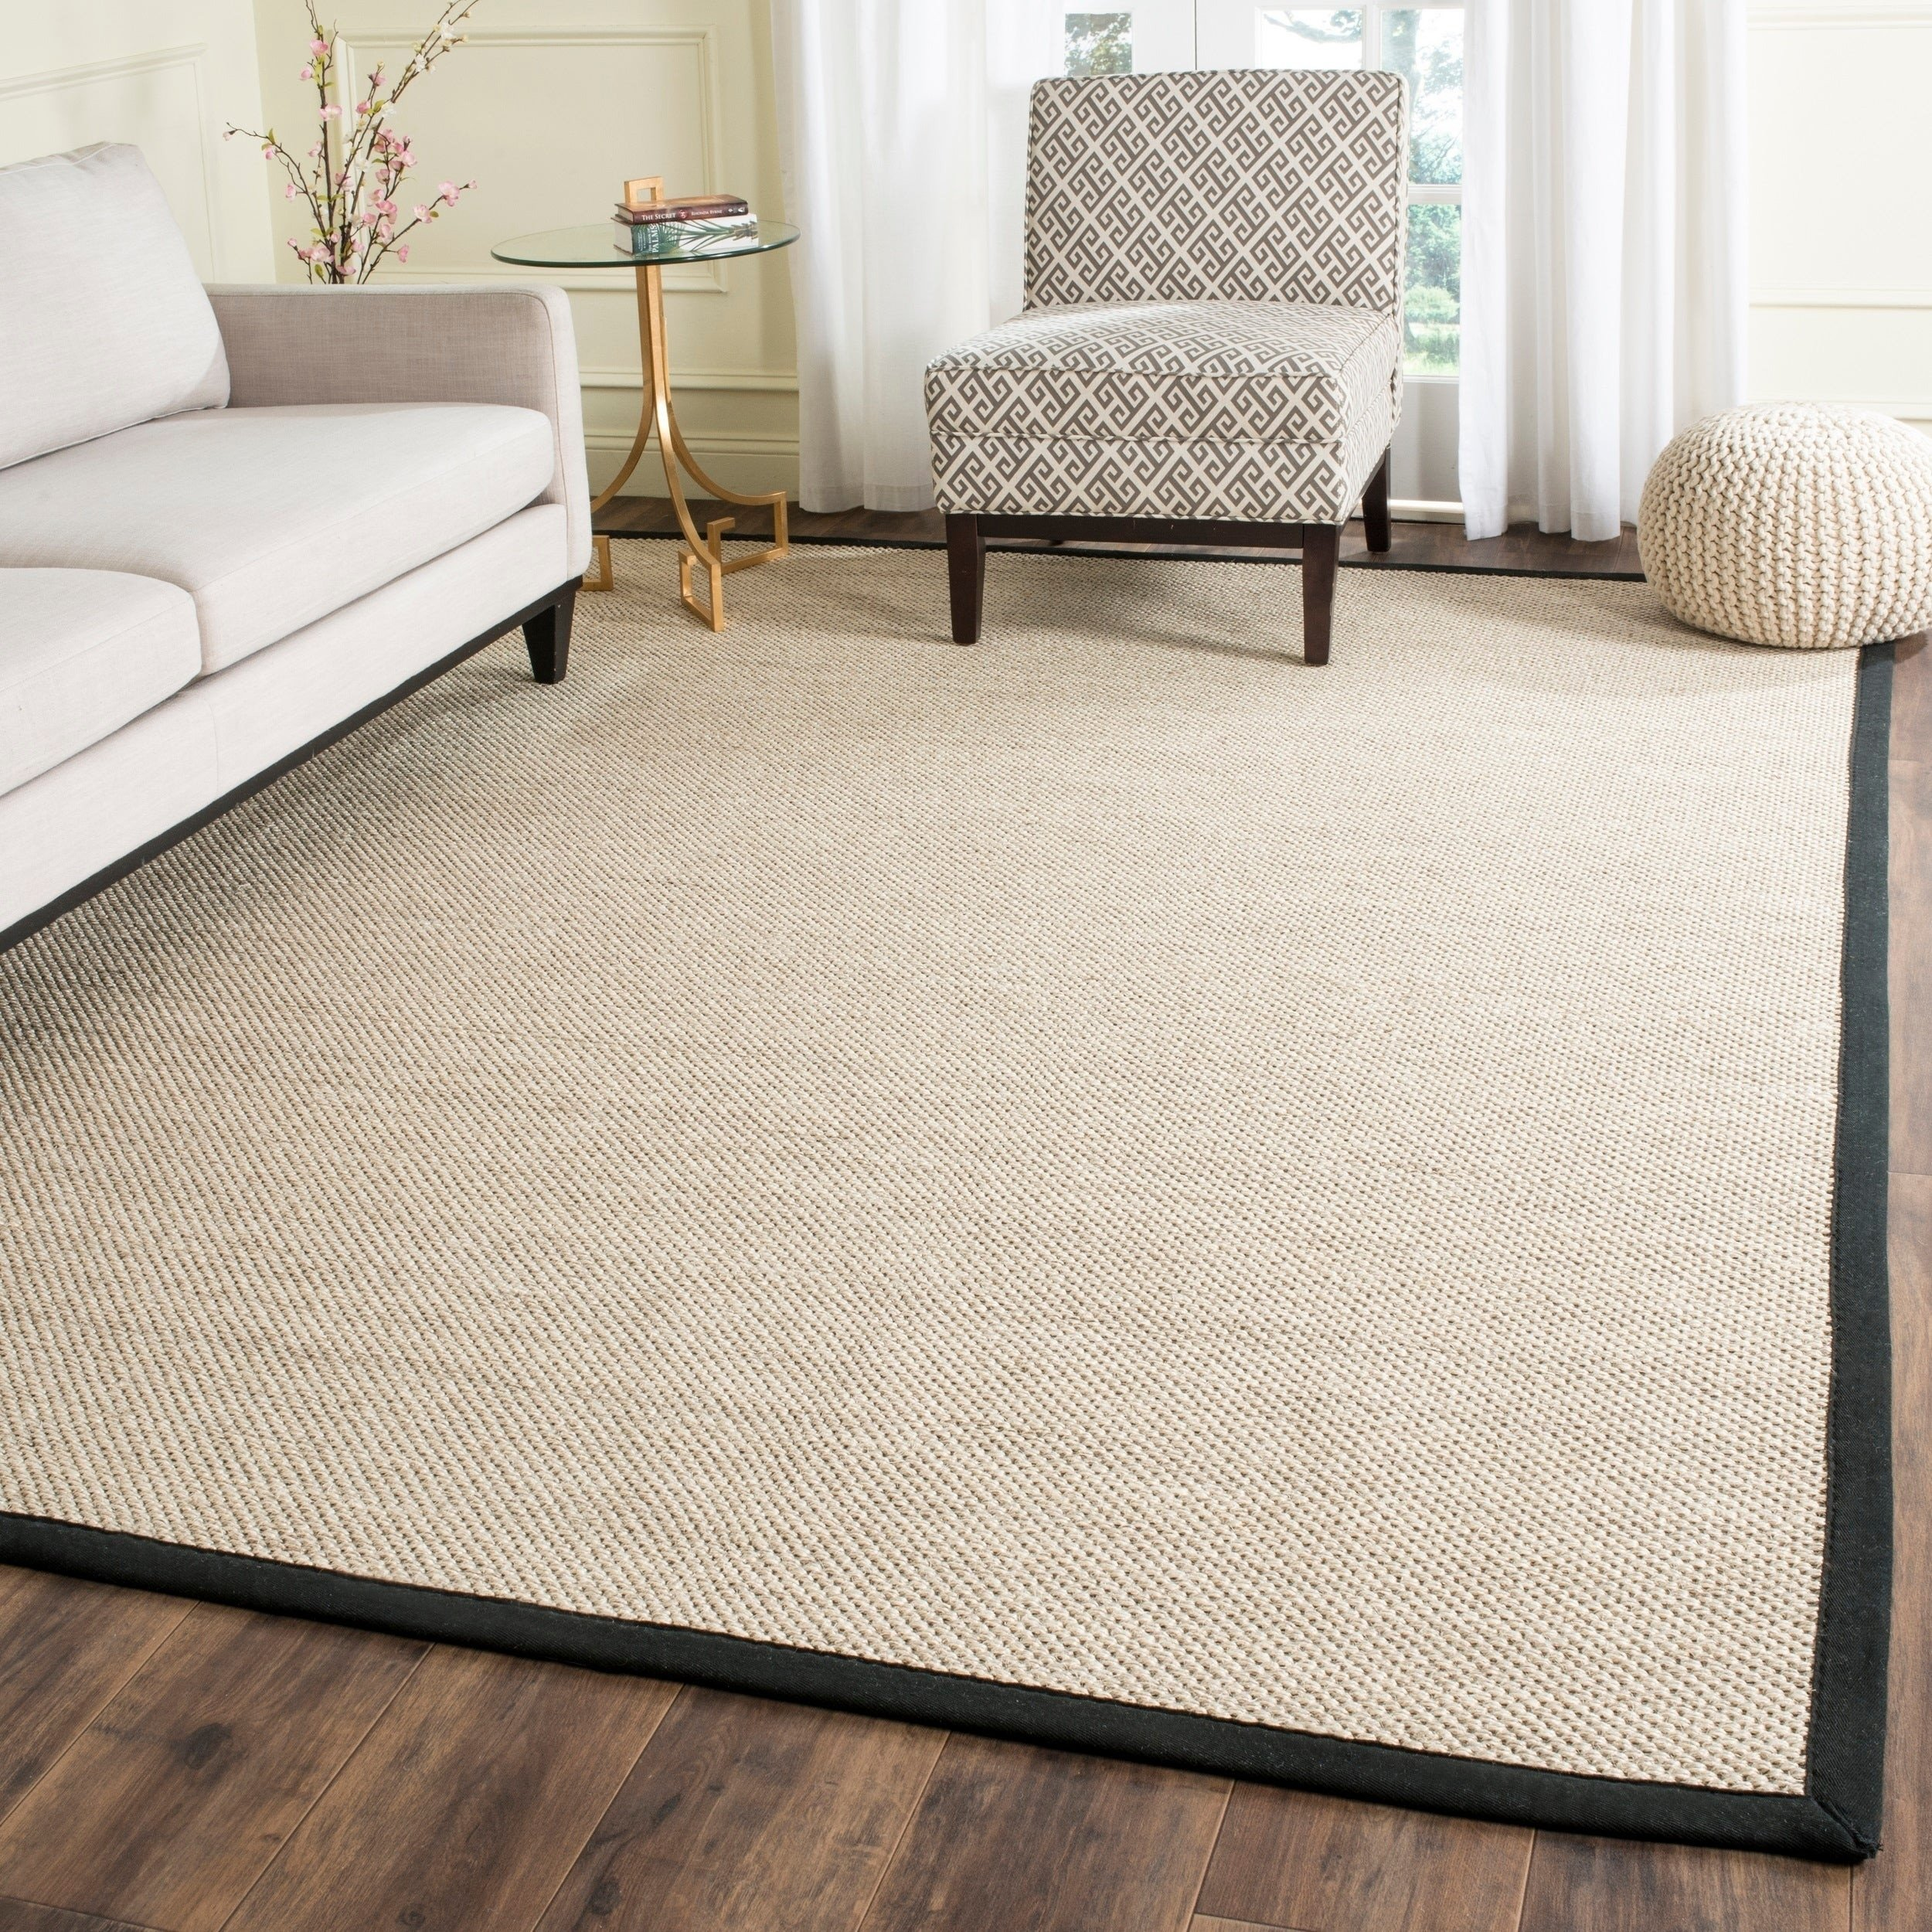 Bedroom area Rug Placement Lovely Safavieh Natural Fiber Pacific Marble Black Sisal Rug 9 X 12